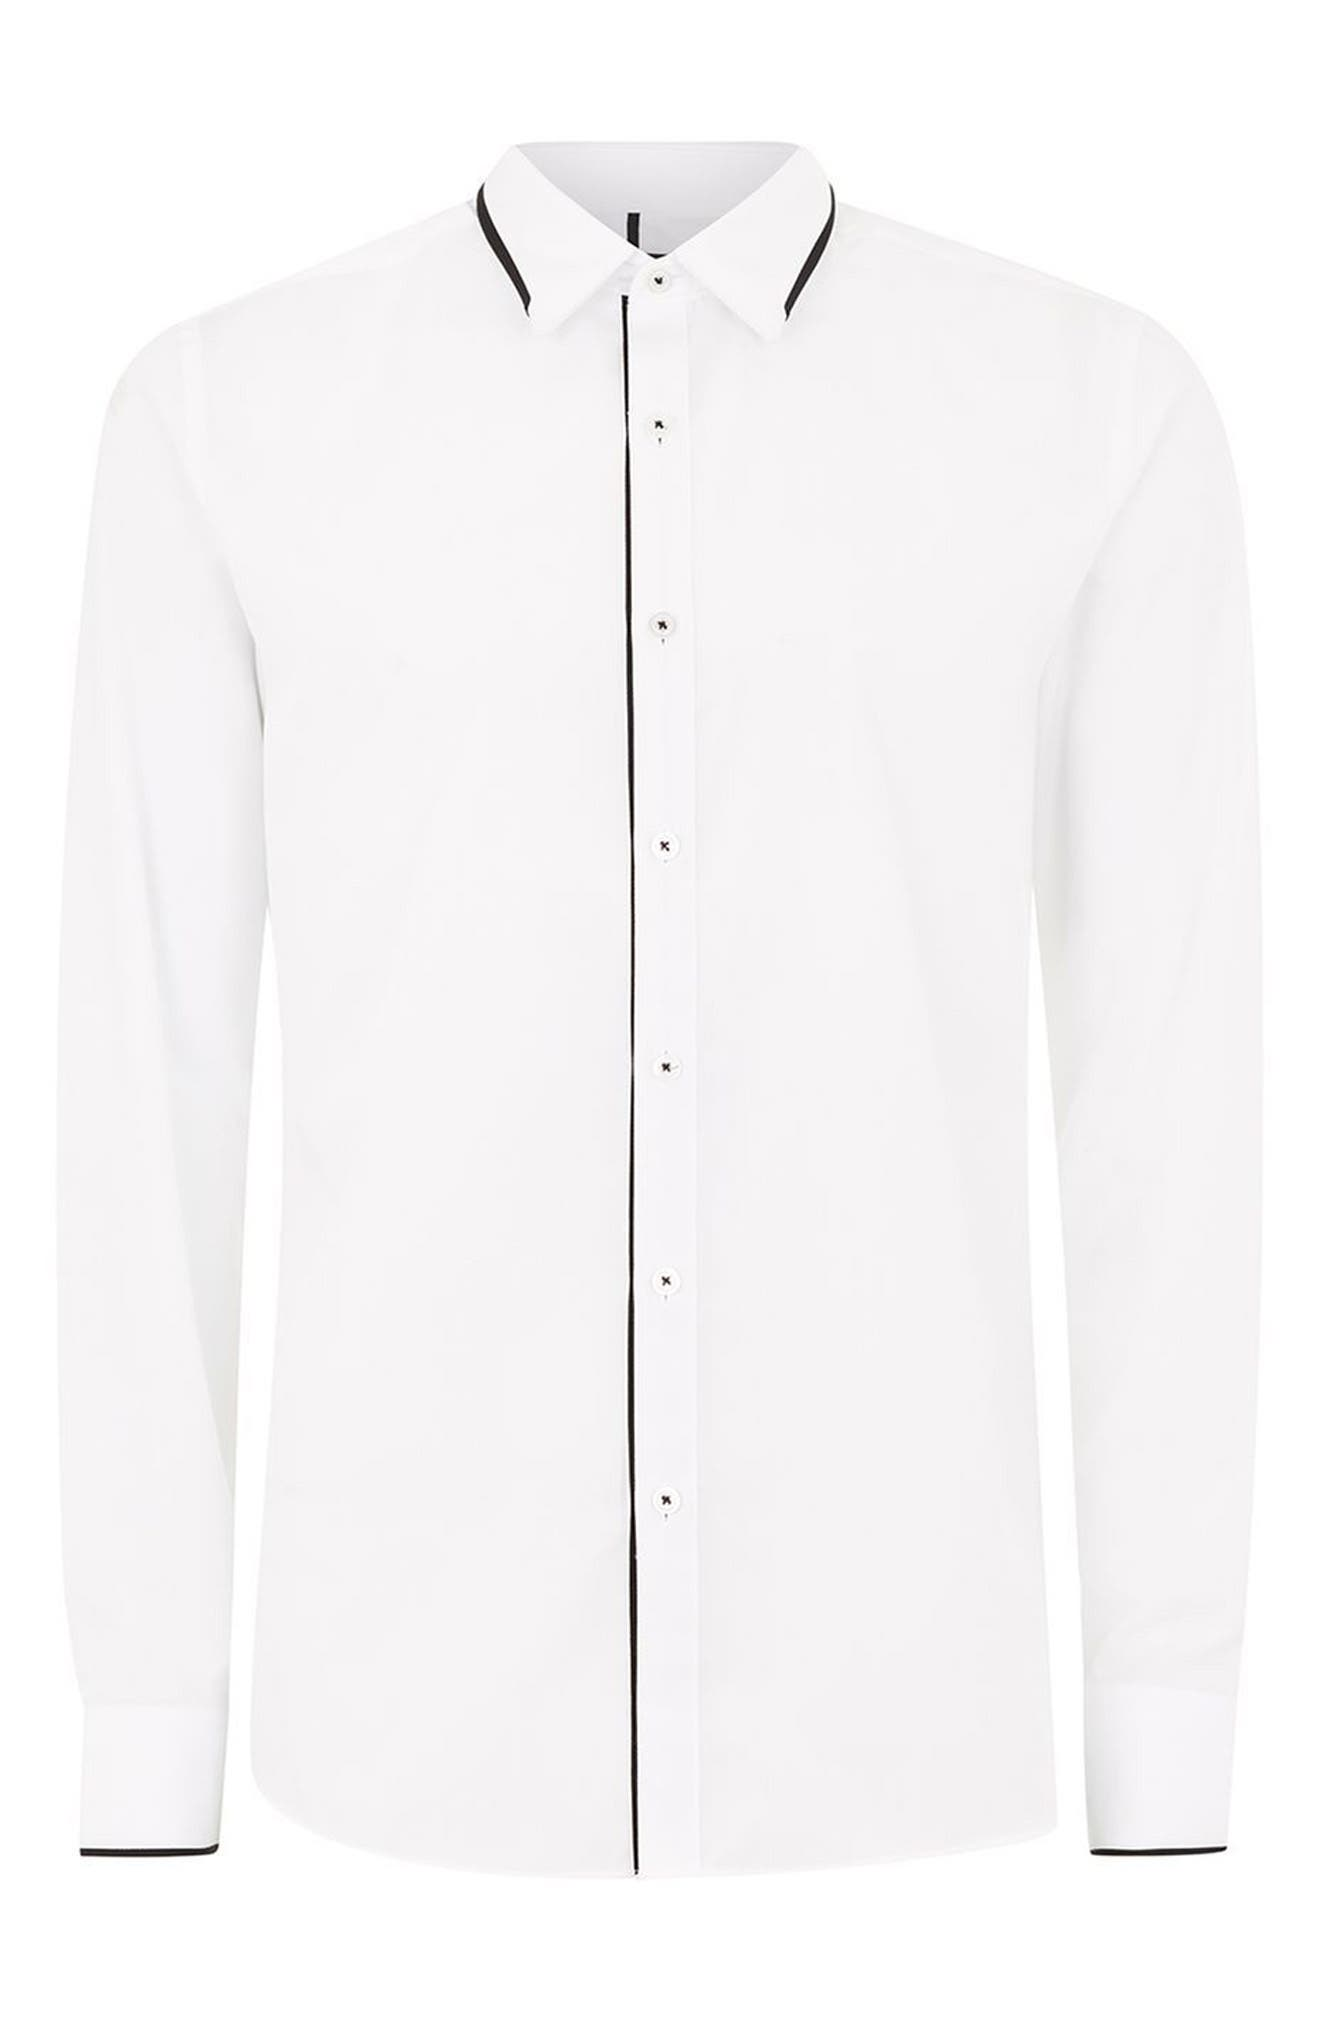 Smart Skinny Fit Dress Shirt,                             Alternate thumbnail 4, color,                             WHITE